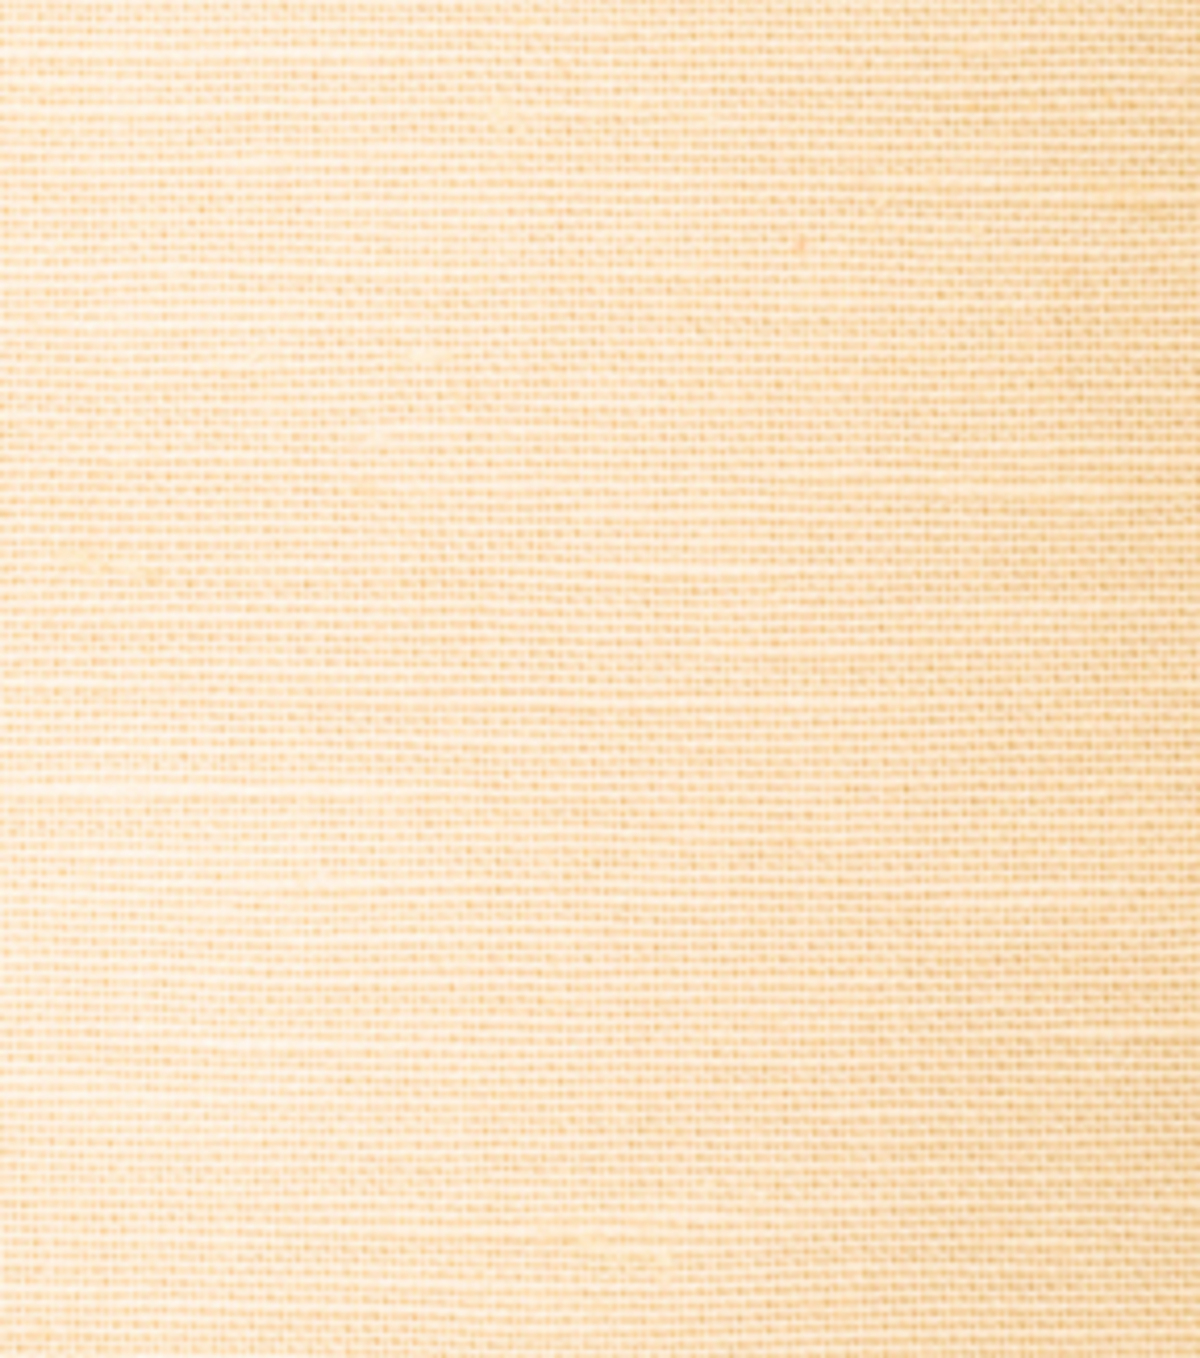 Home Decor 8\u0022x8\u0022 Fabric Swatch-Signature Series Linen-Cotton Papyrus